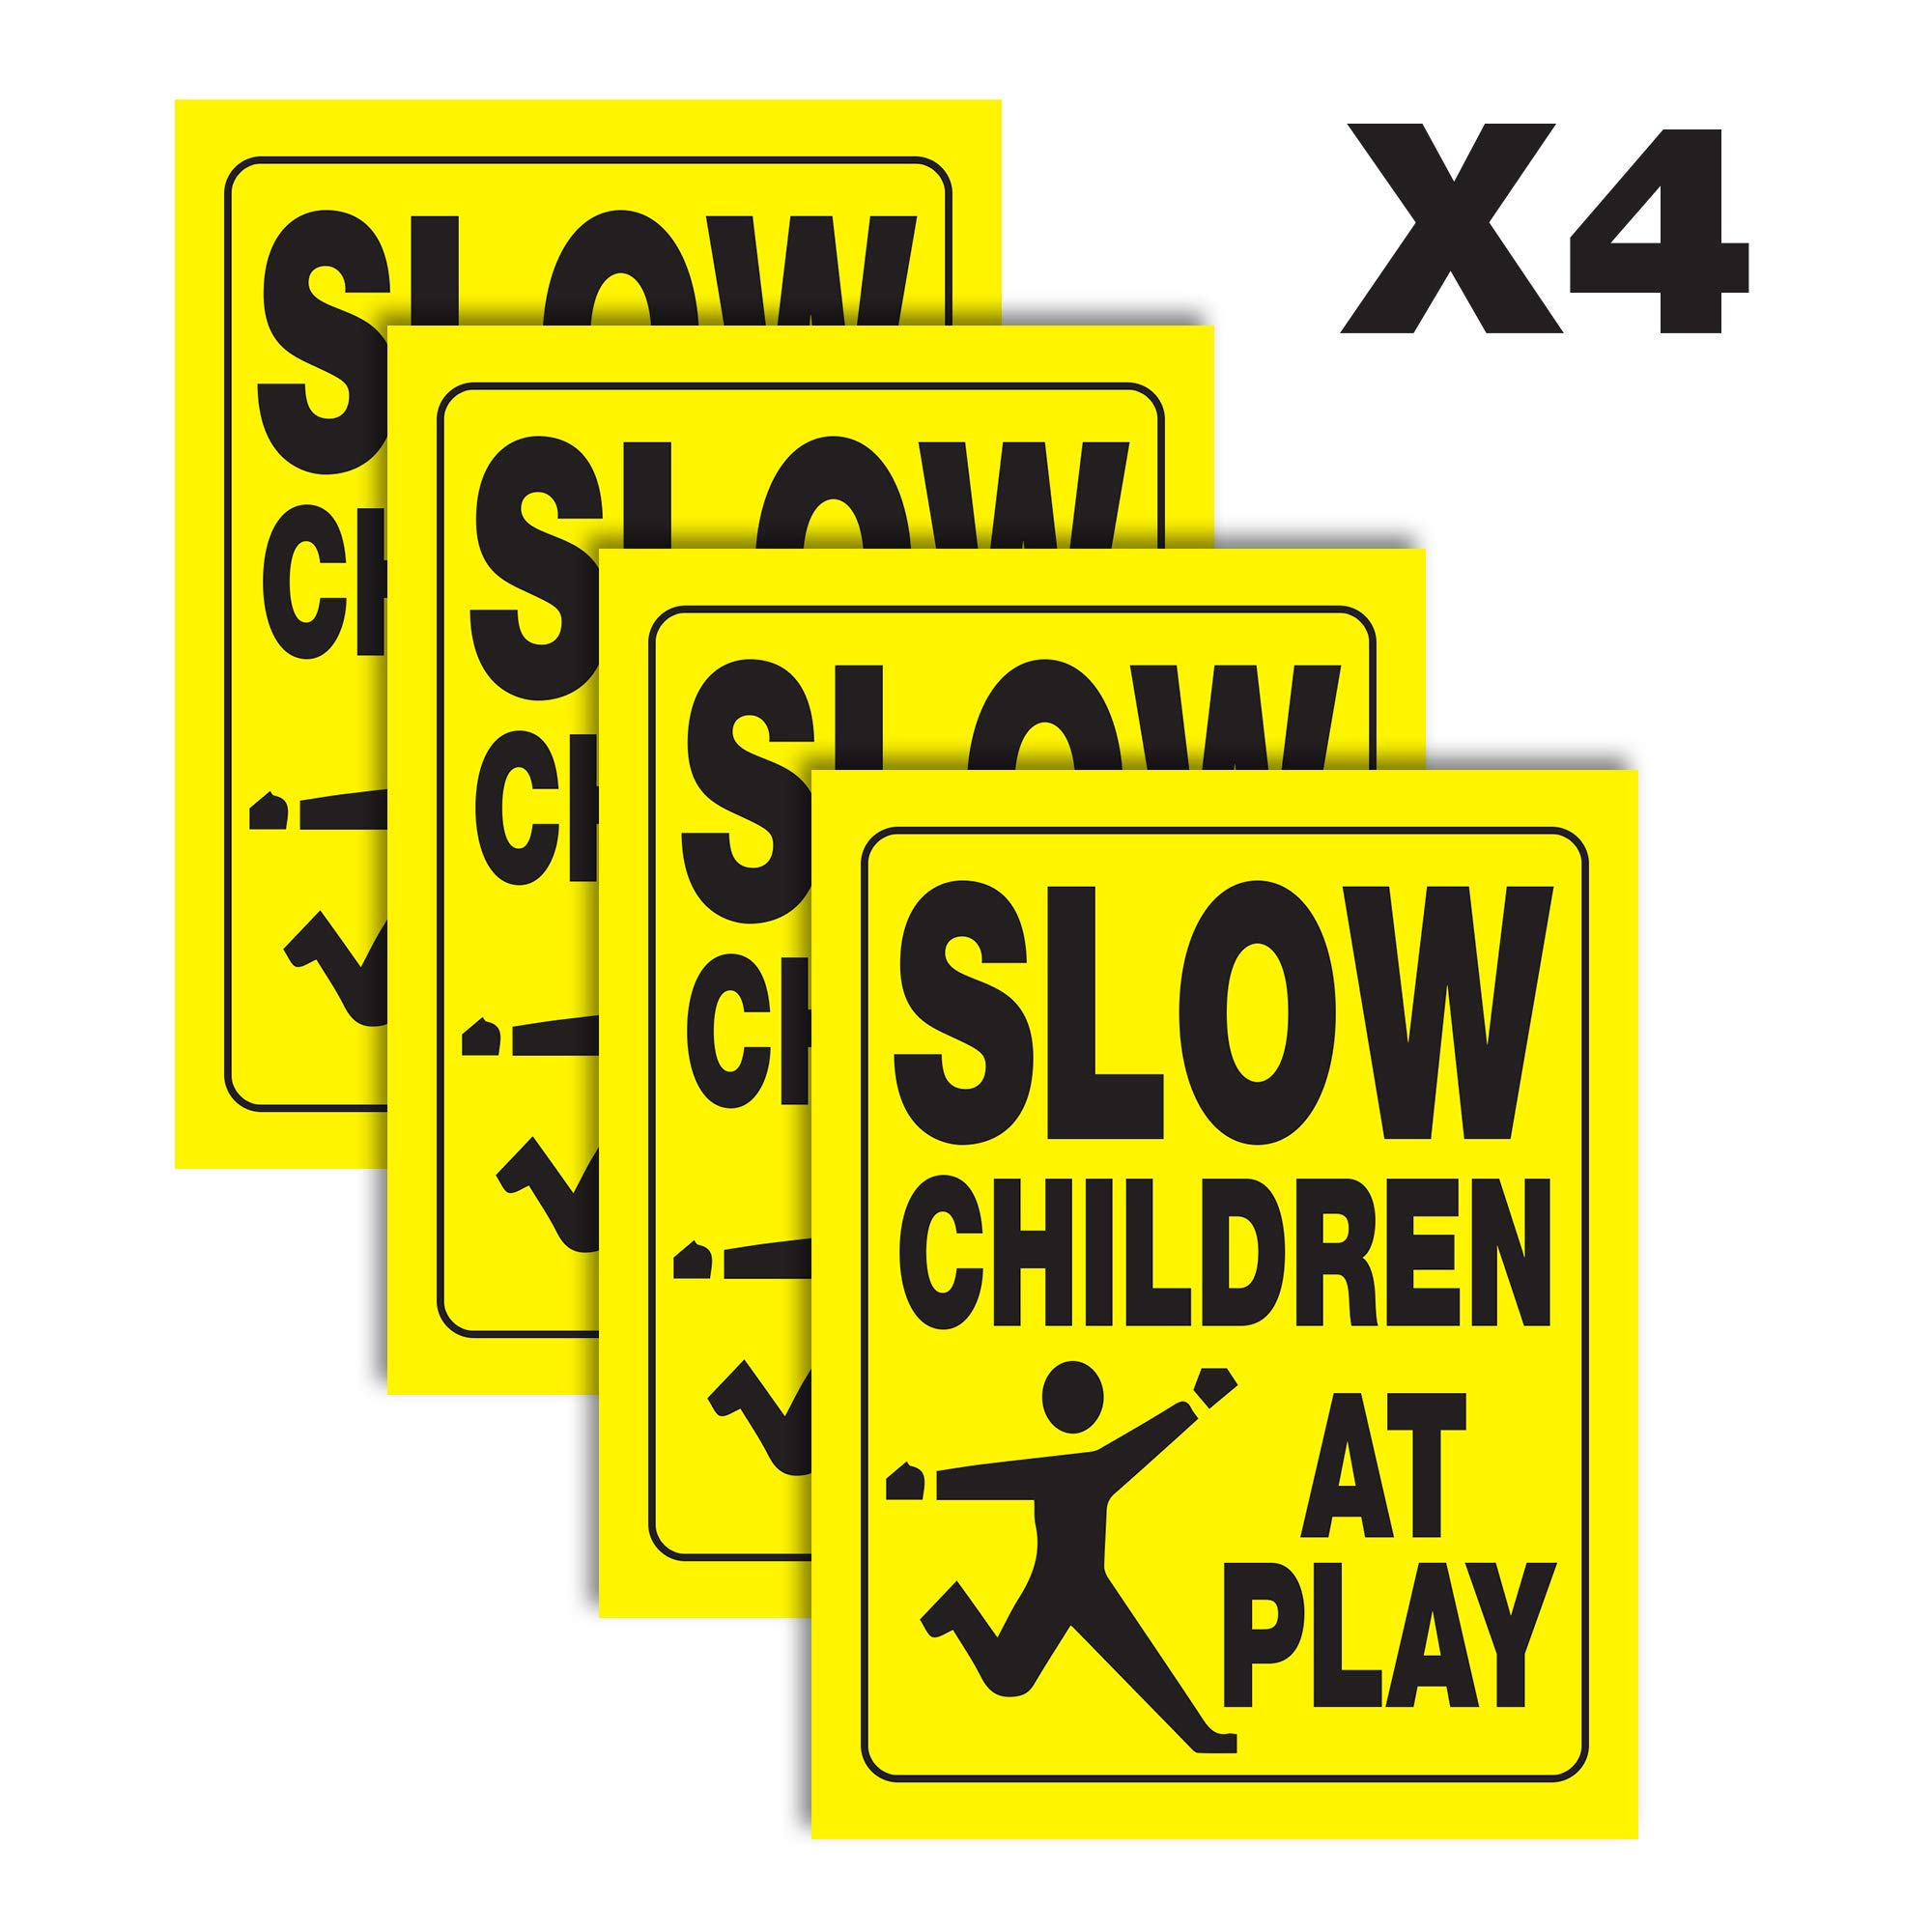 Slow Children at Play Yellow Yard Sign | Double-Sided Black on Yellow Safety Slow Down Signs for Sidewalks, Yards and Driveways 18'' x 24'' (4 Pack)